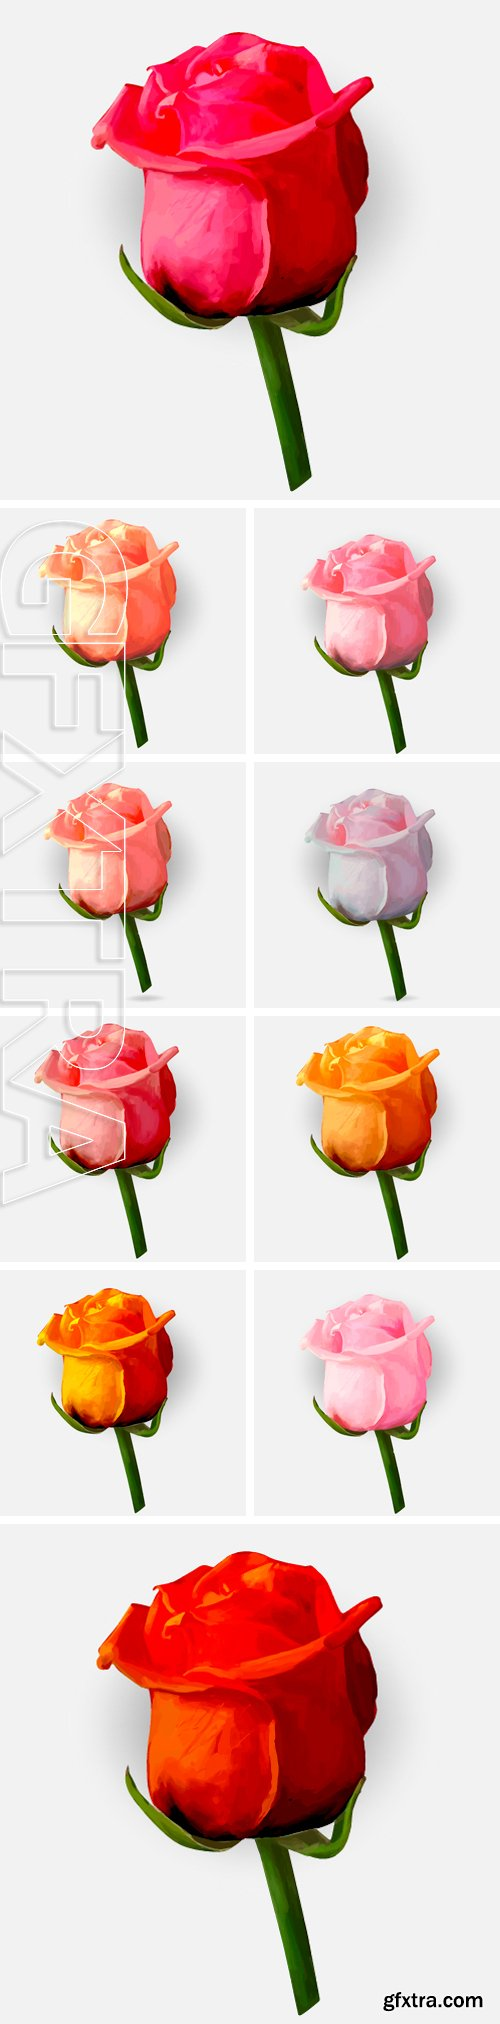 Stock Vectors - Rose blossoming bud isolated drawing vector illustration